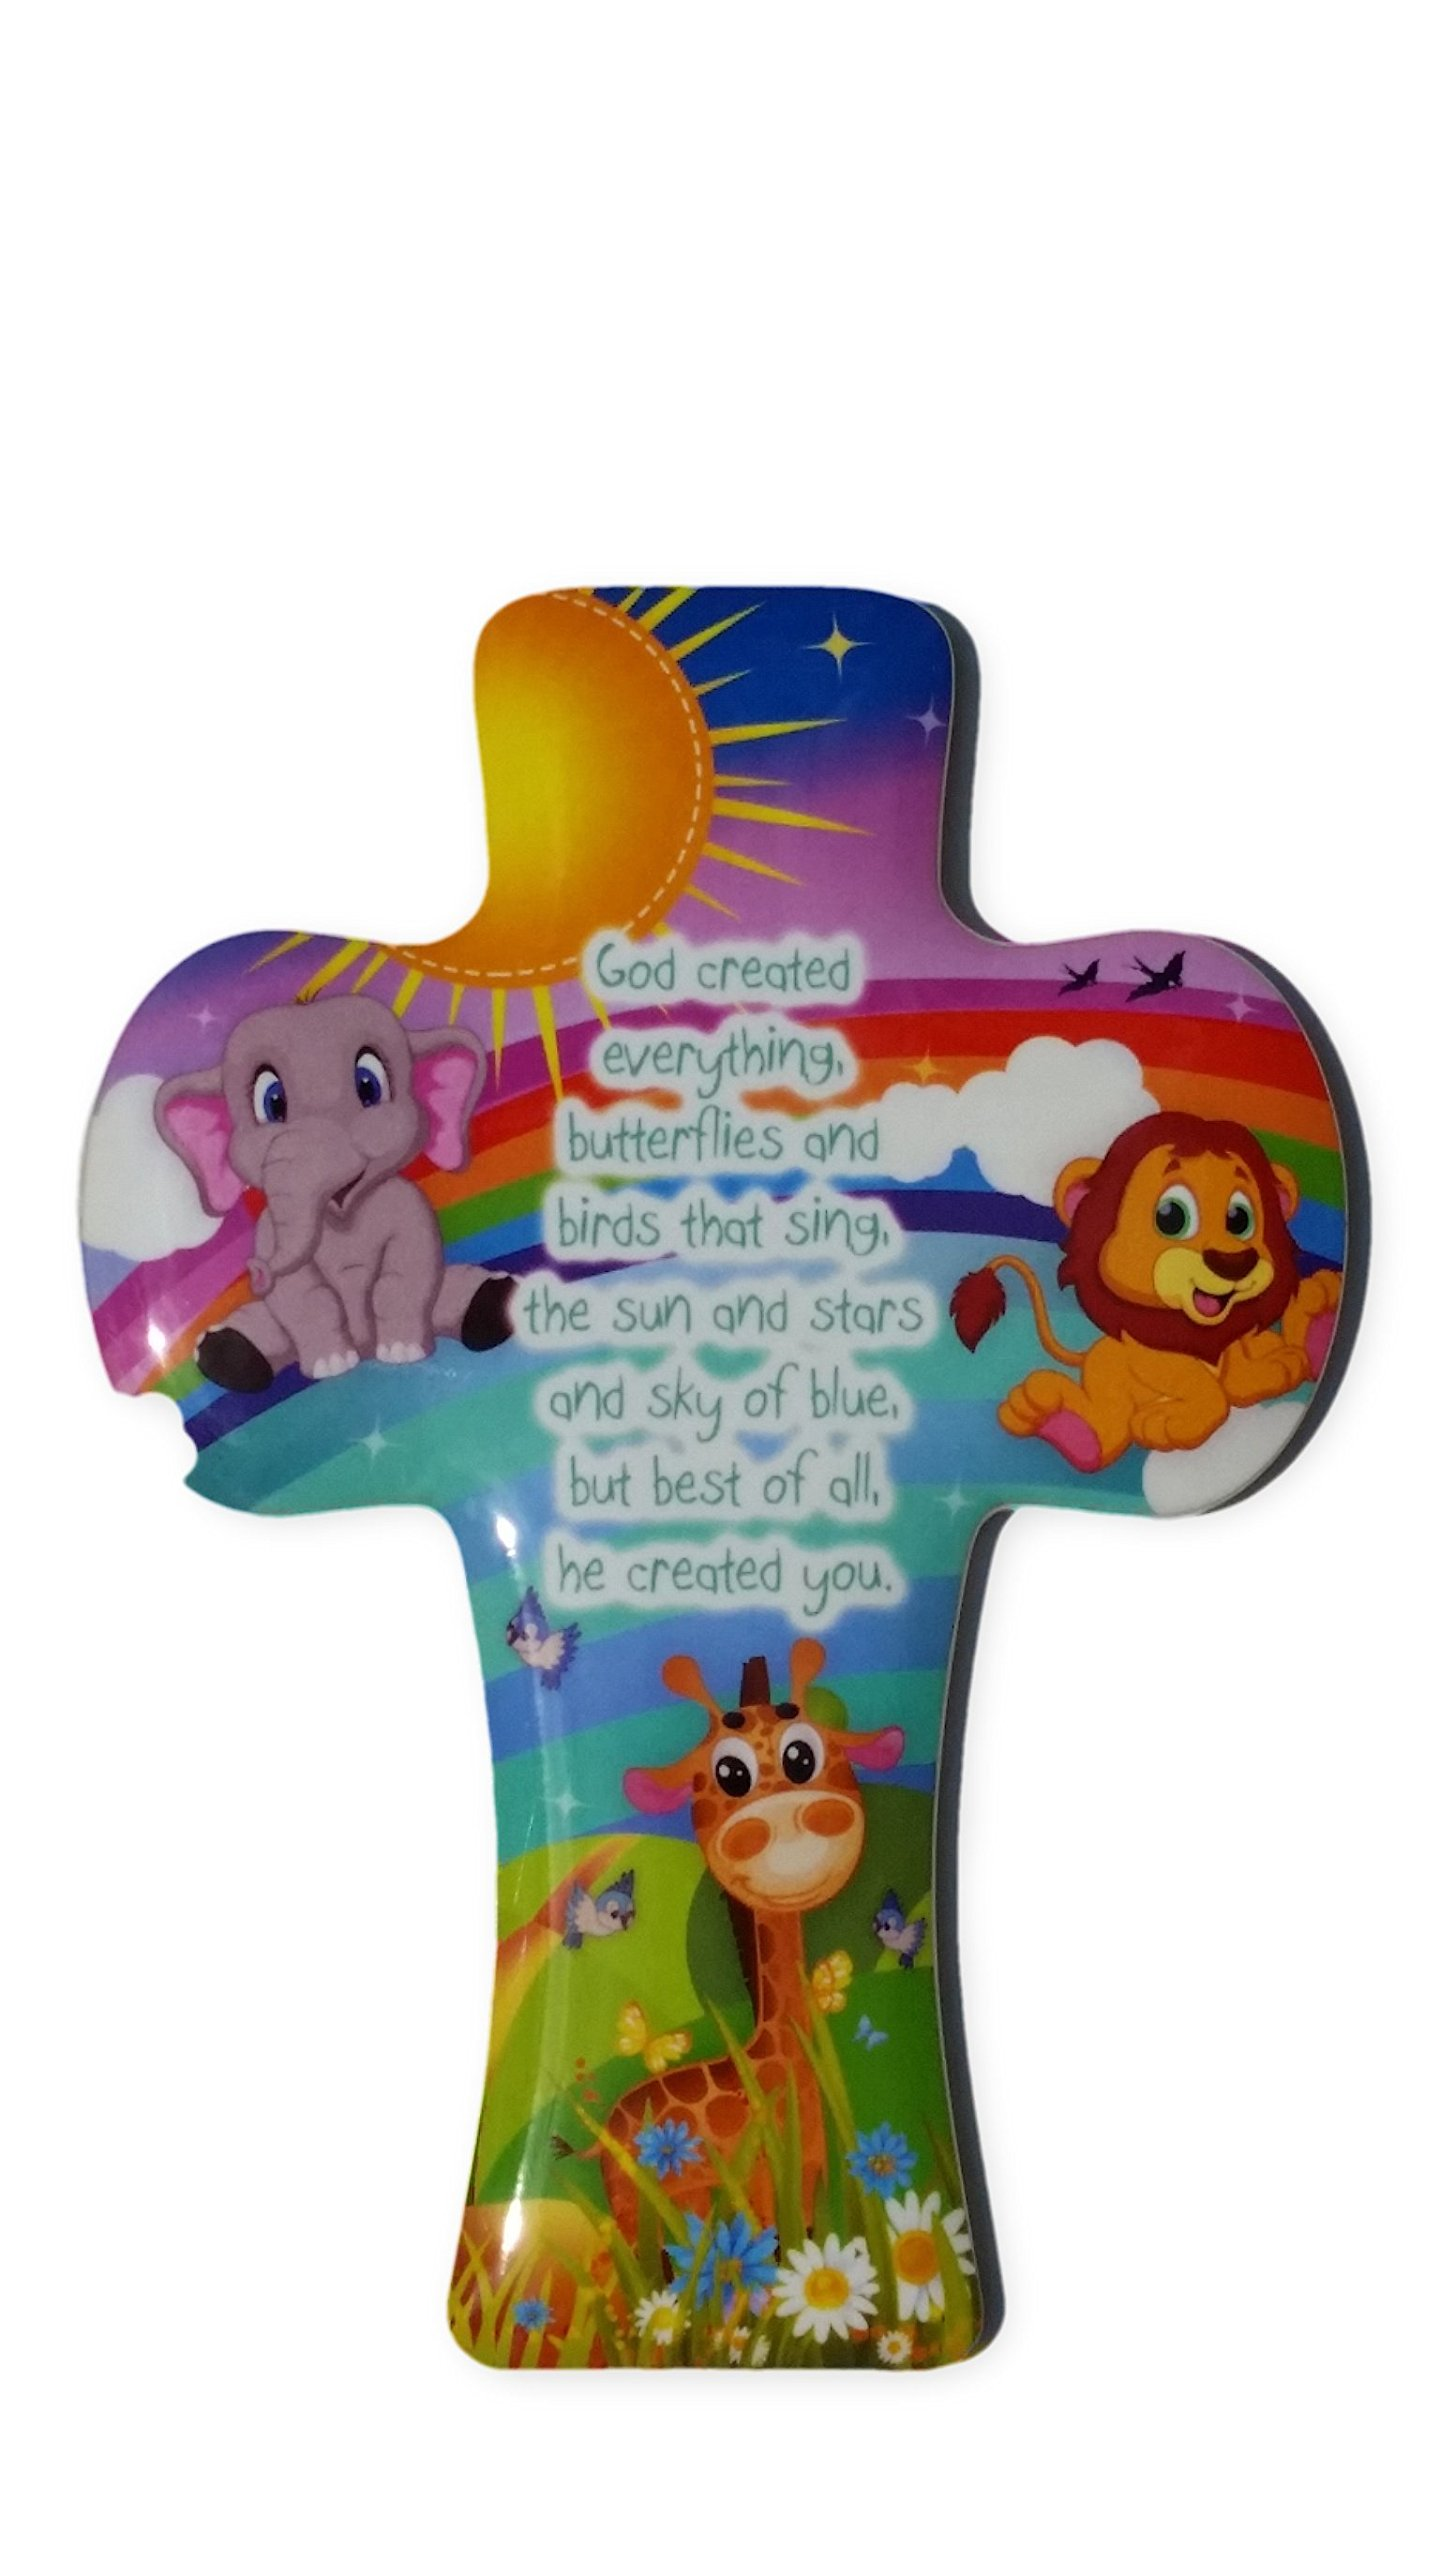 Inspire Nation Kids Wall Cross Plaque with Rainbow Jungle Elephant Giraffe Lion 5.5 inches